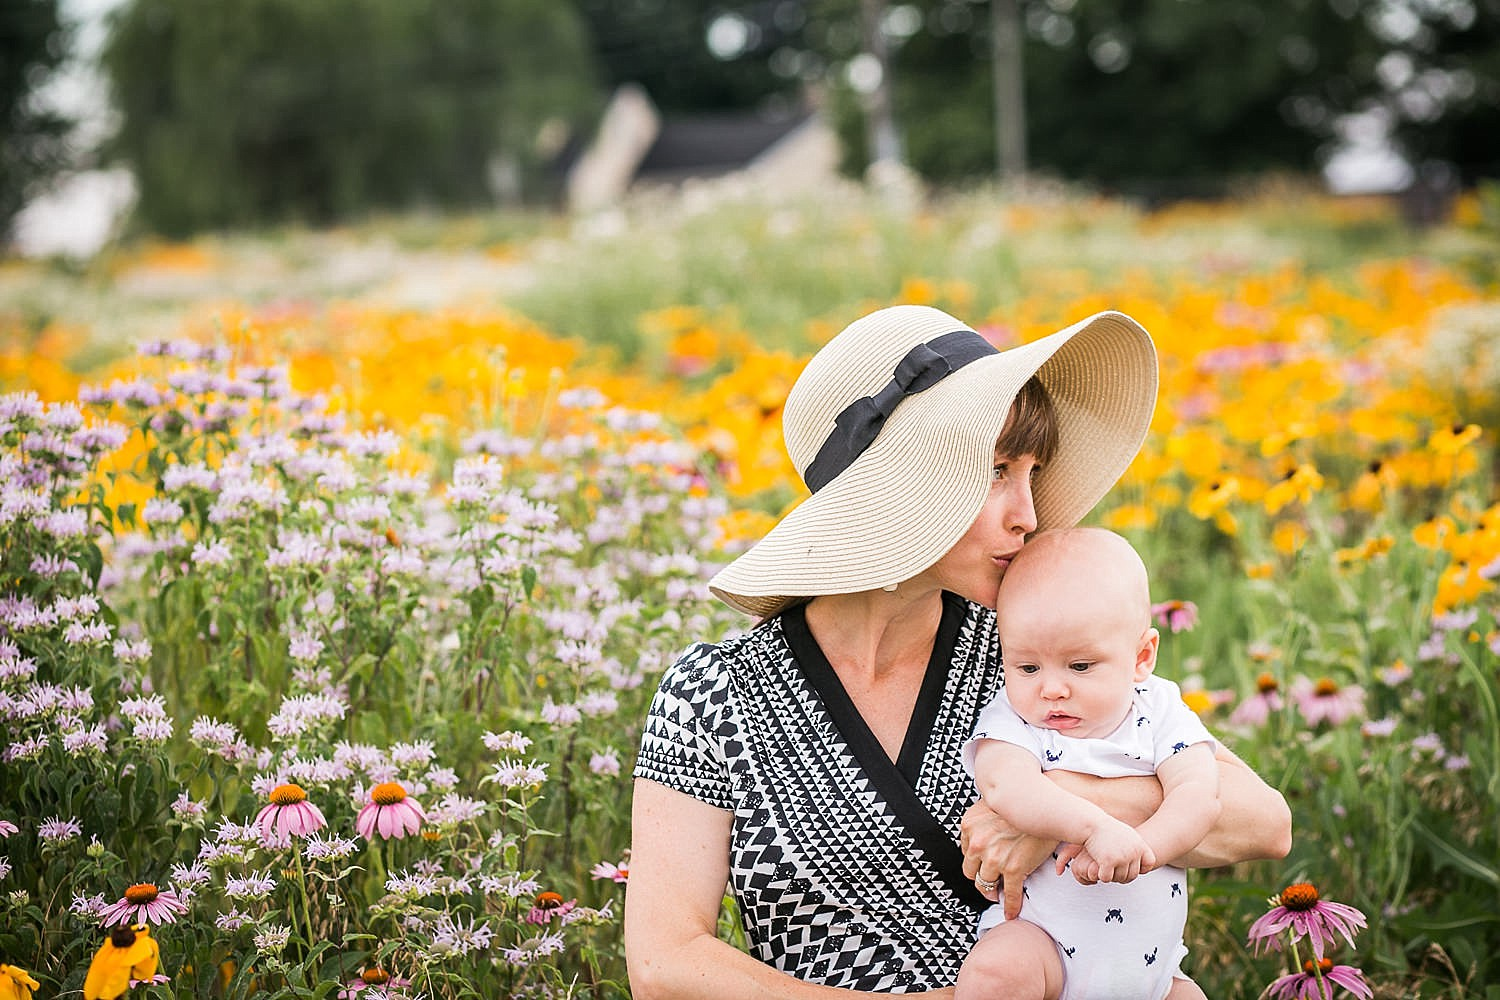 Lititz_family_photographer_wildflower_field-22.jpg